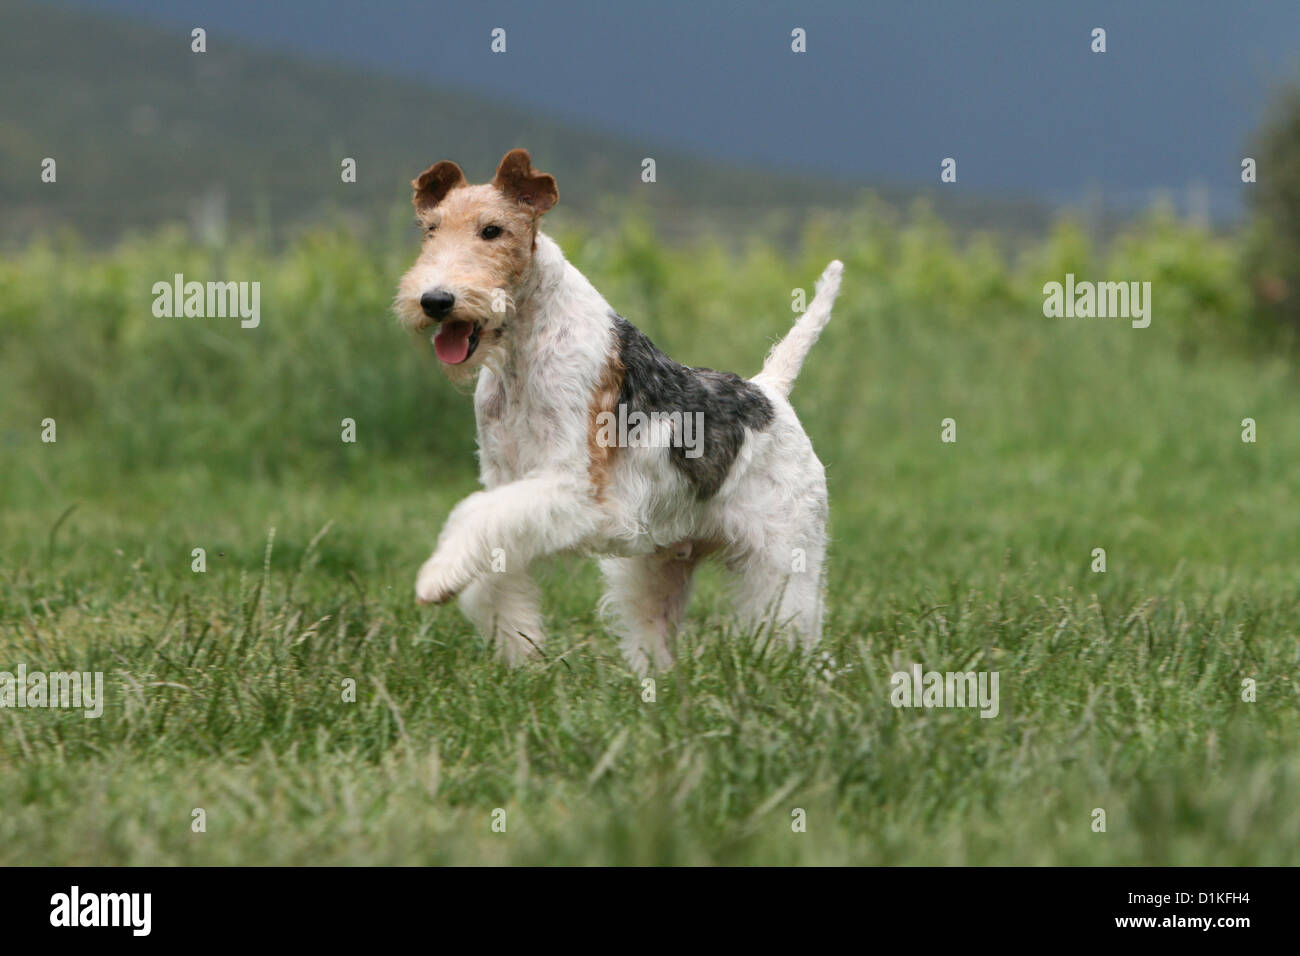 An interesting breed is a fox terrier